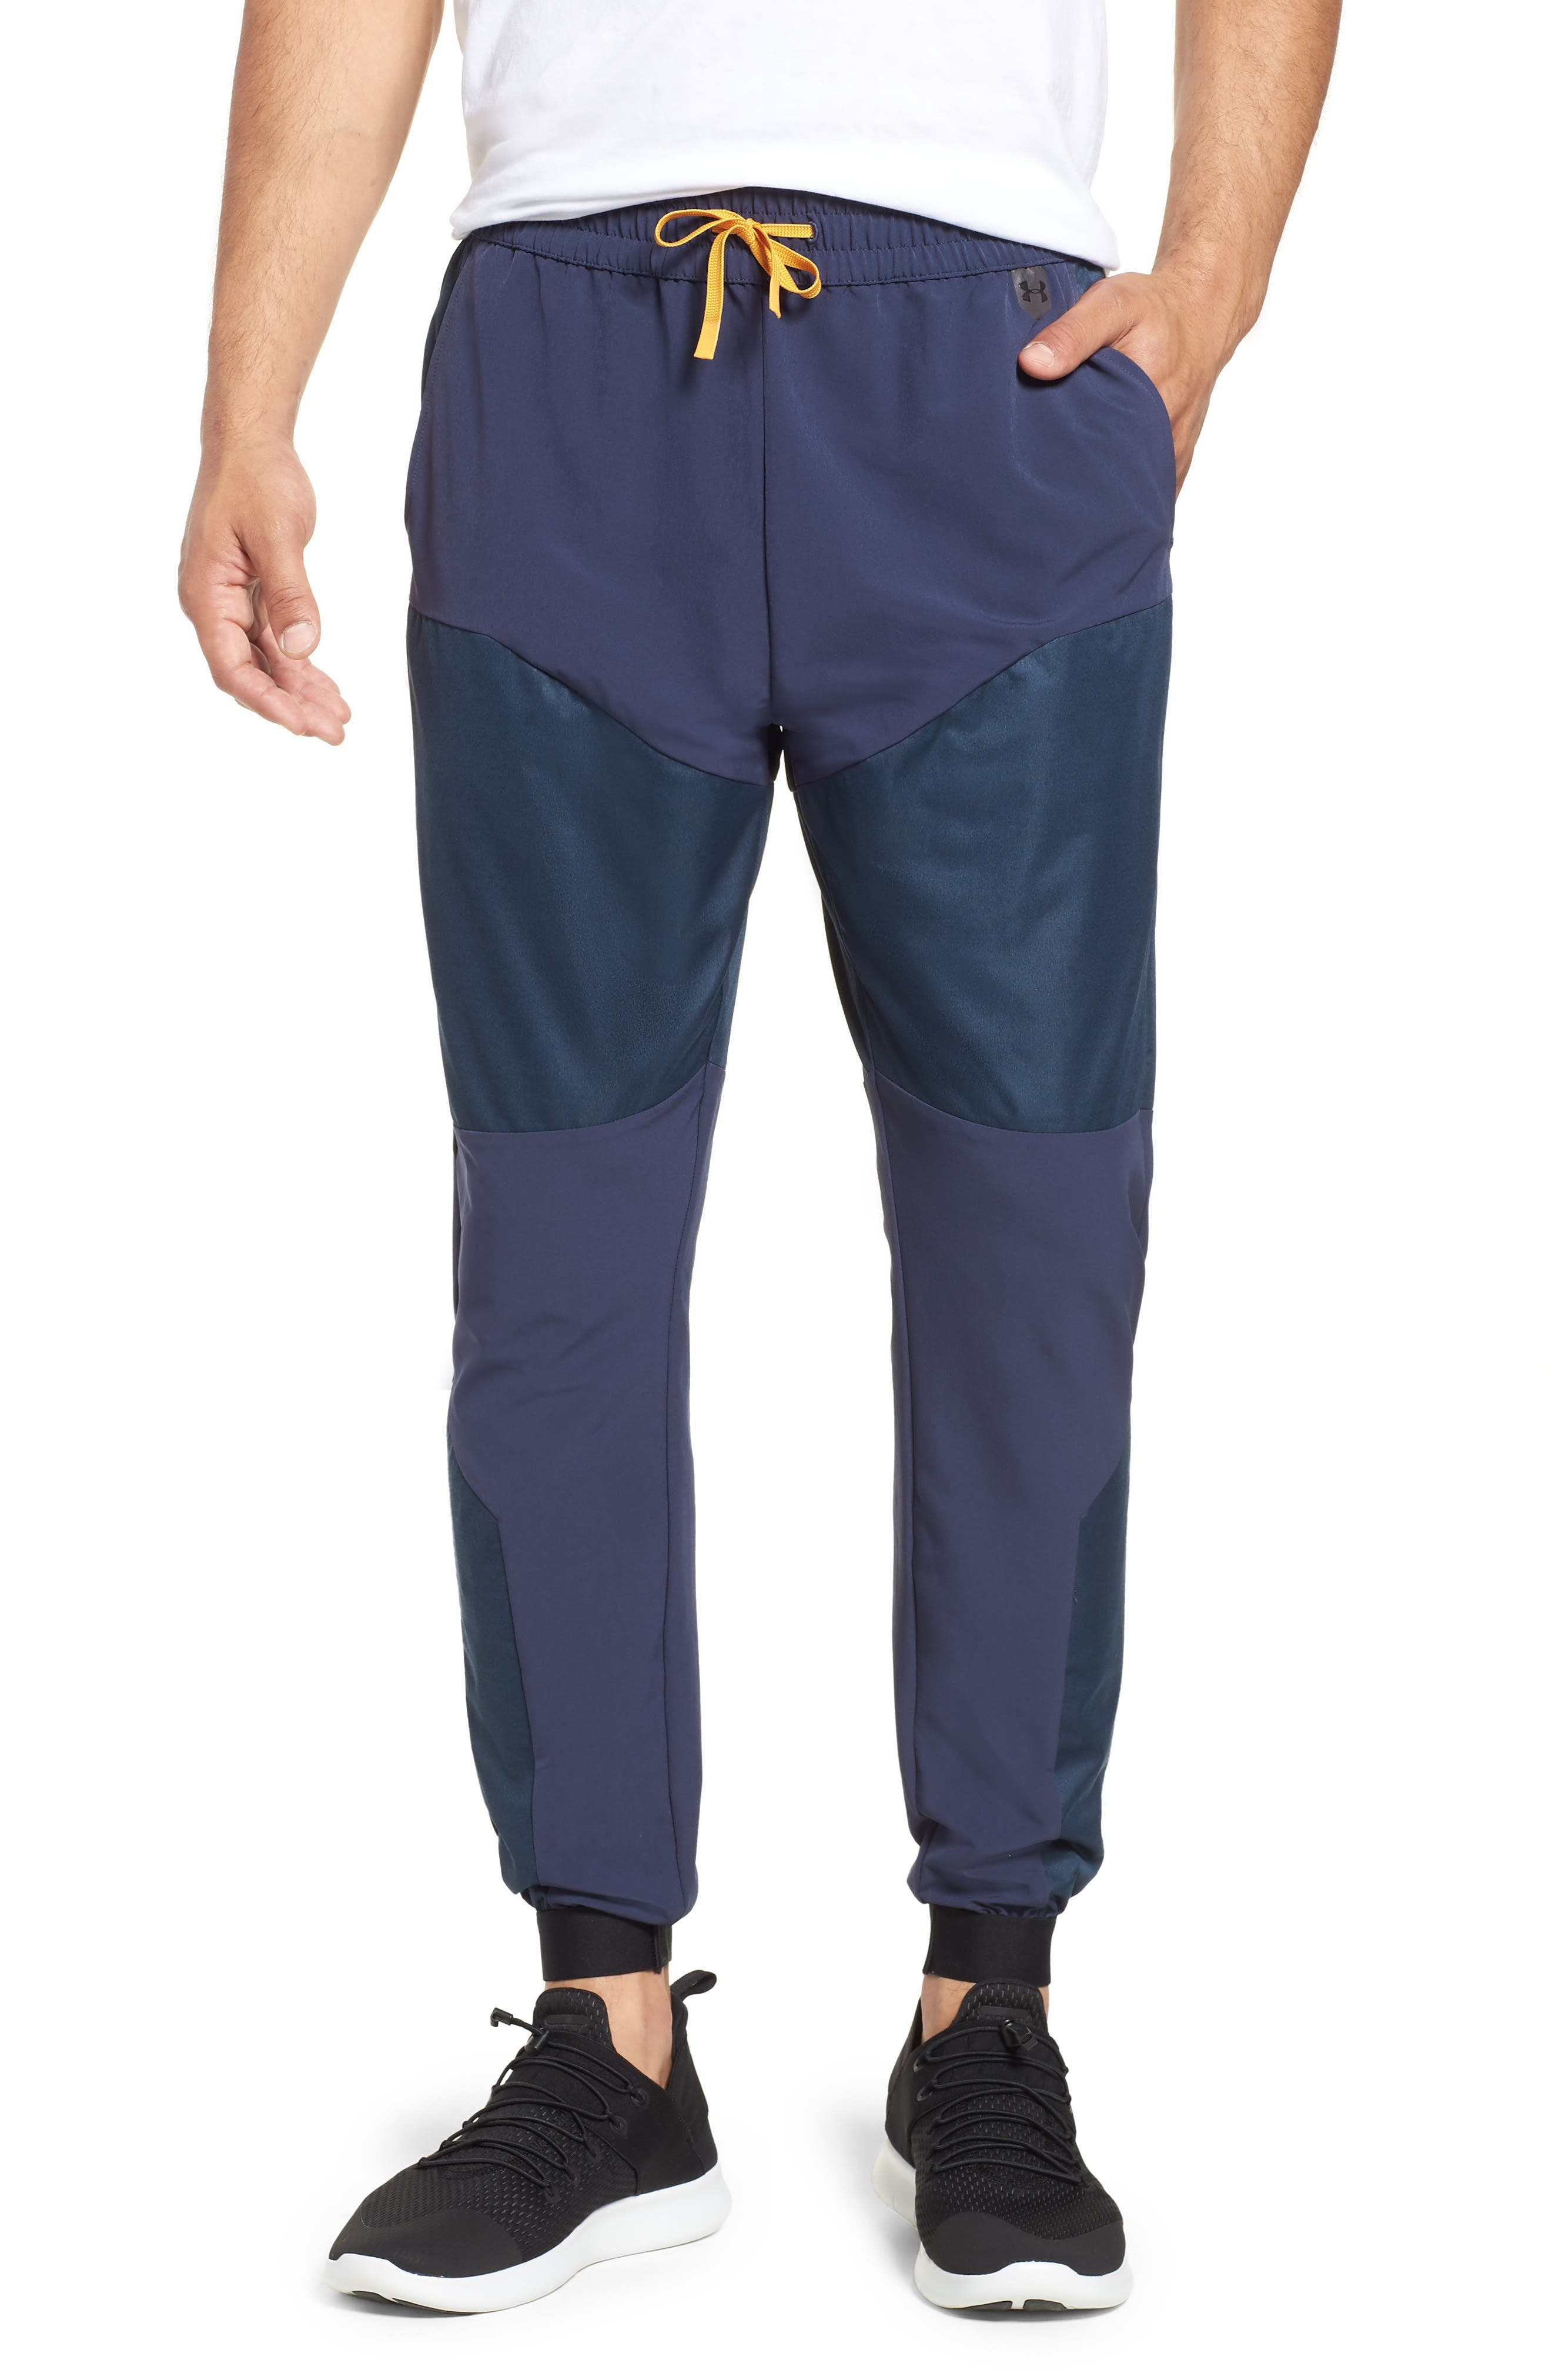 Unstoppable GORE<sup>®</sup> WINDSTOPPER<sup>®</sup> Jogger Pants,                             Main thumbnail 1, color,                             MIDSUMMER NIGHT / REFLECTIVE